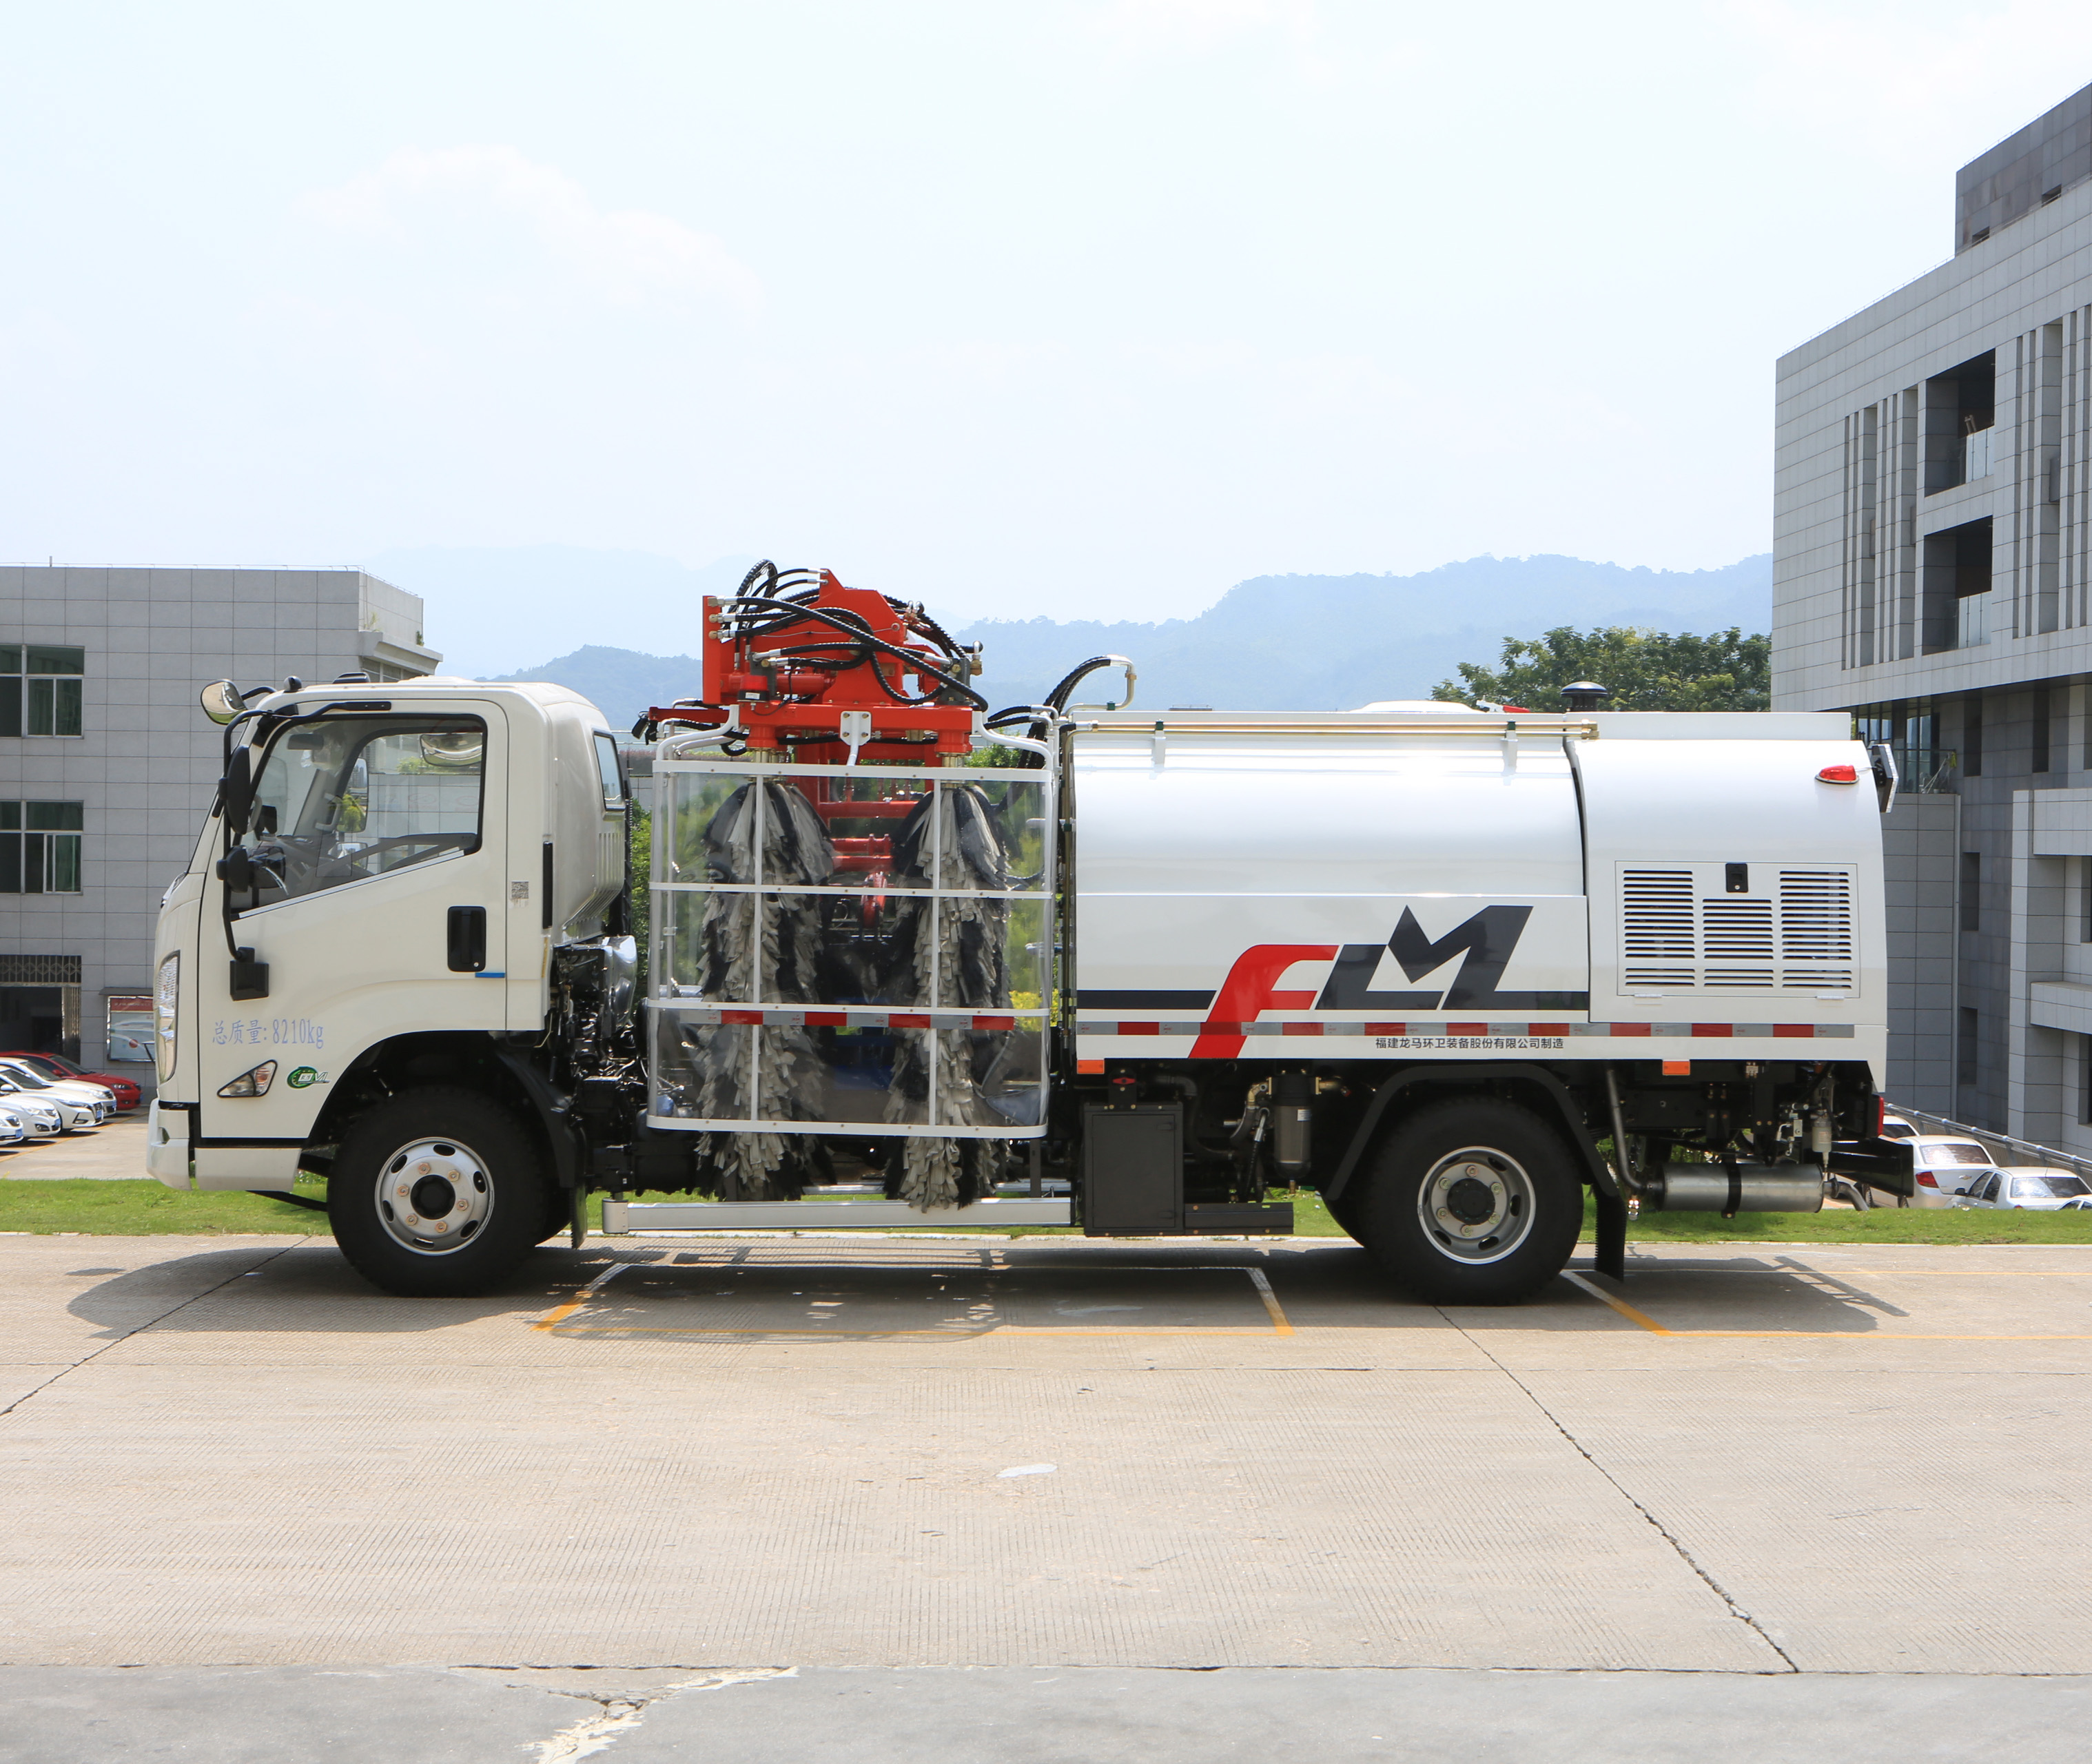 How does the FULONGMA guardrail cleaning truck work?